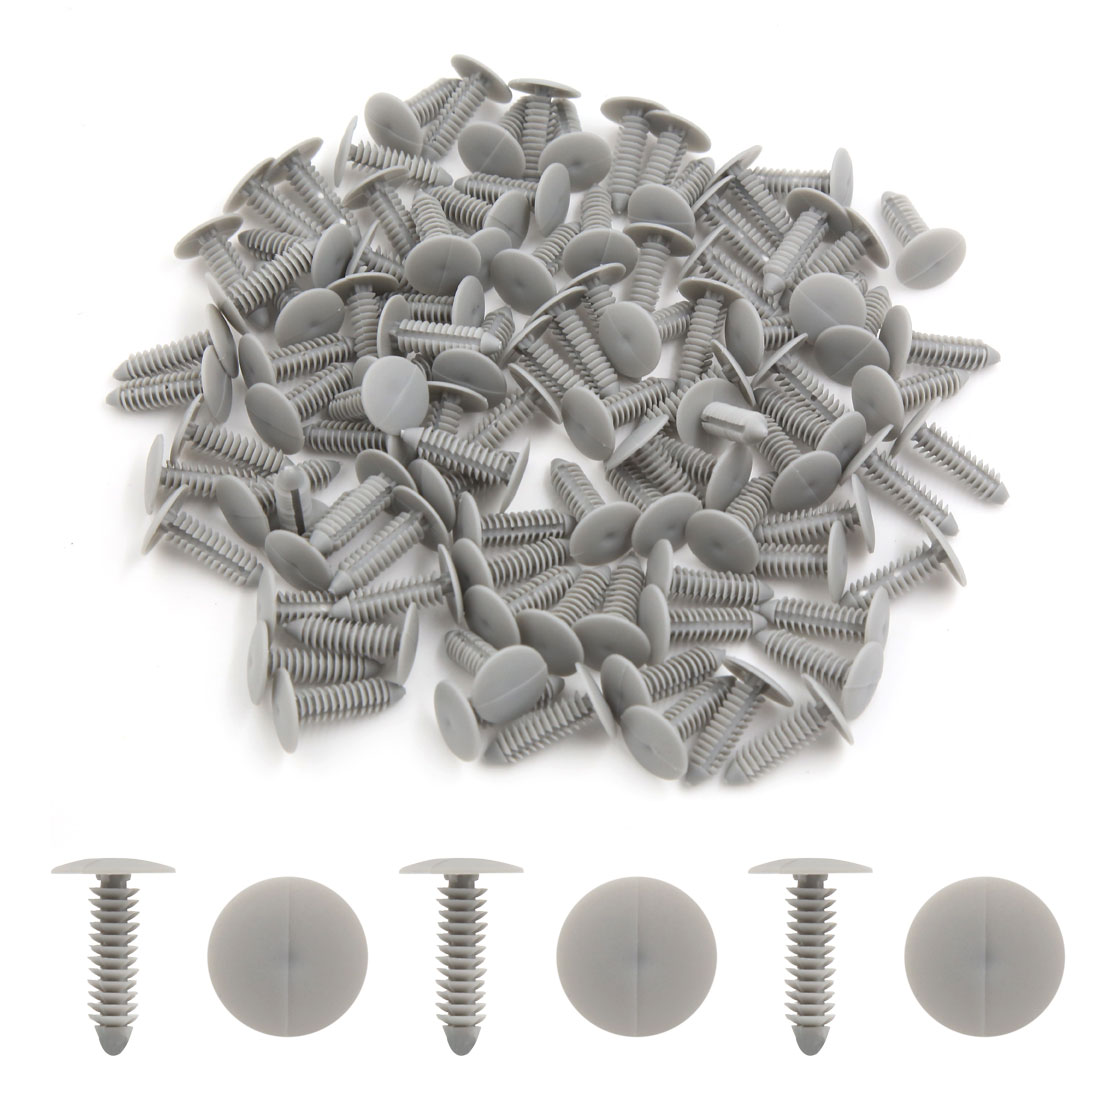 Universal 7mm Gray Plastic Trim Rivets Buckle Fastener Clips 100PCS for Car SUV - image 1 of 2